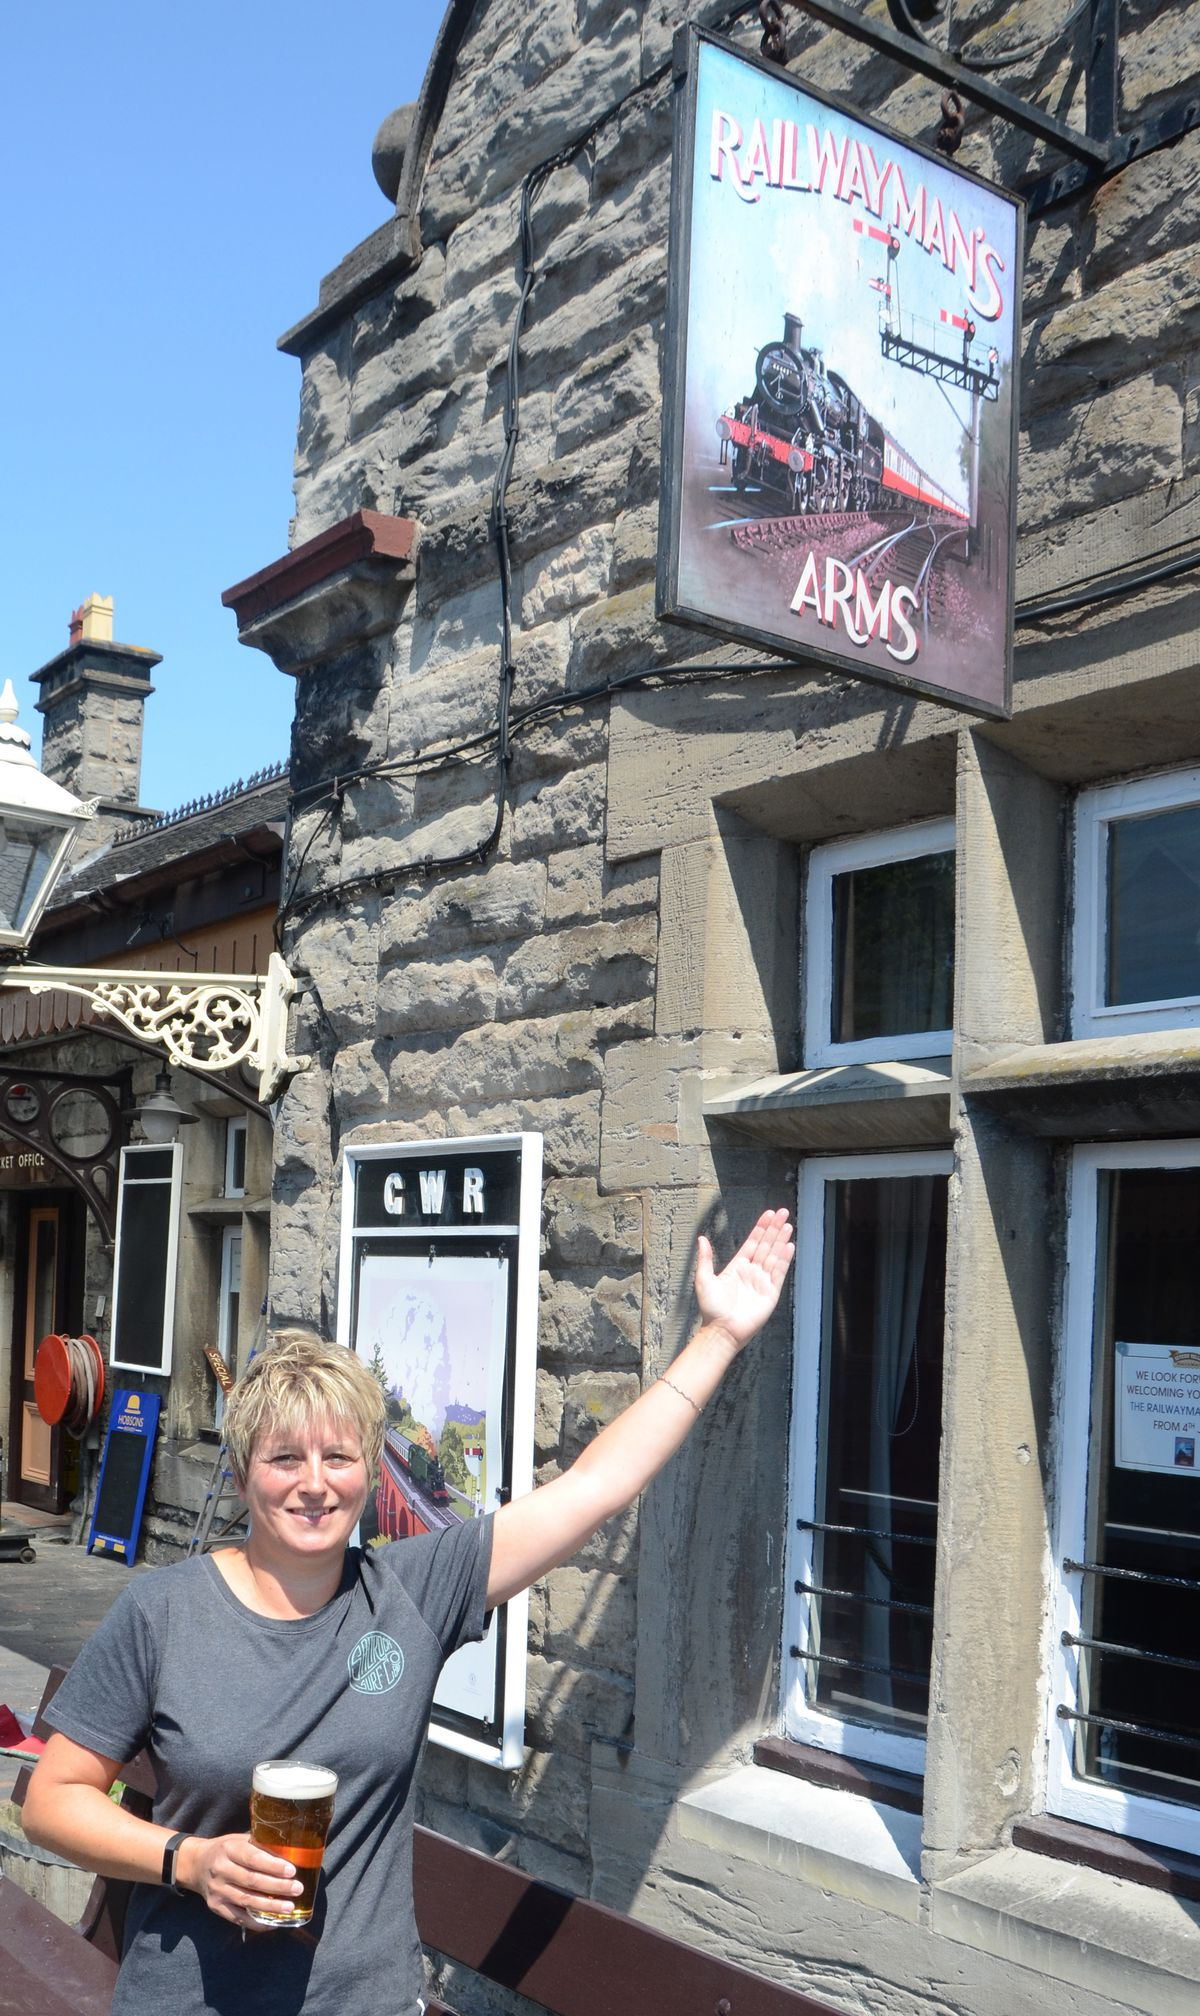 Andrea Smith, bar manager, ready to reopen The Railwayman's Arms in Bridgnorth